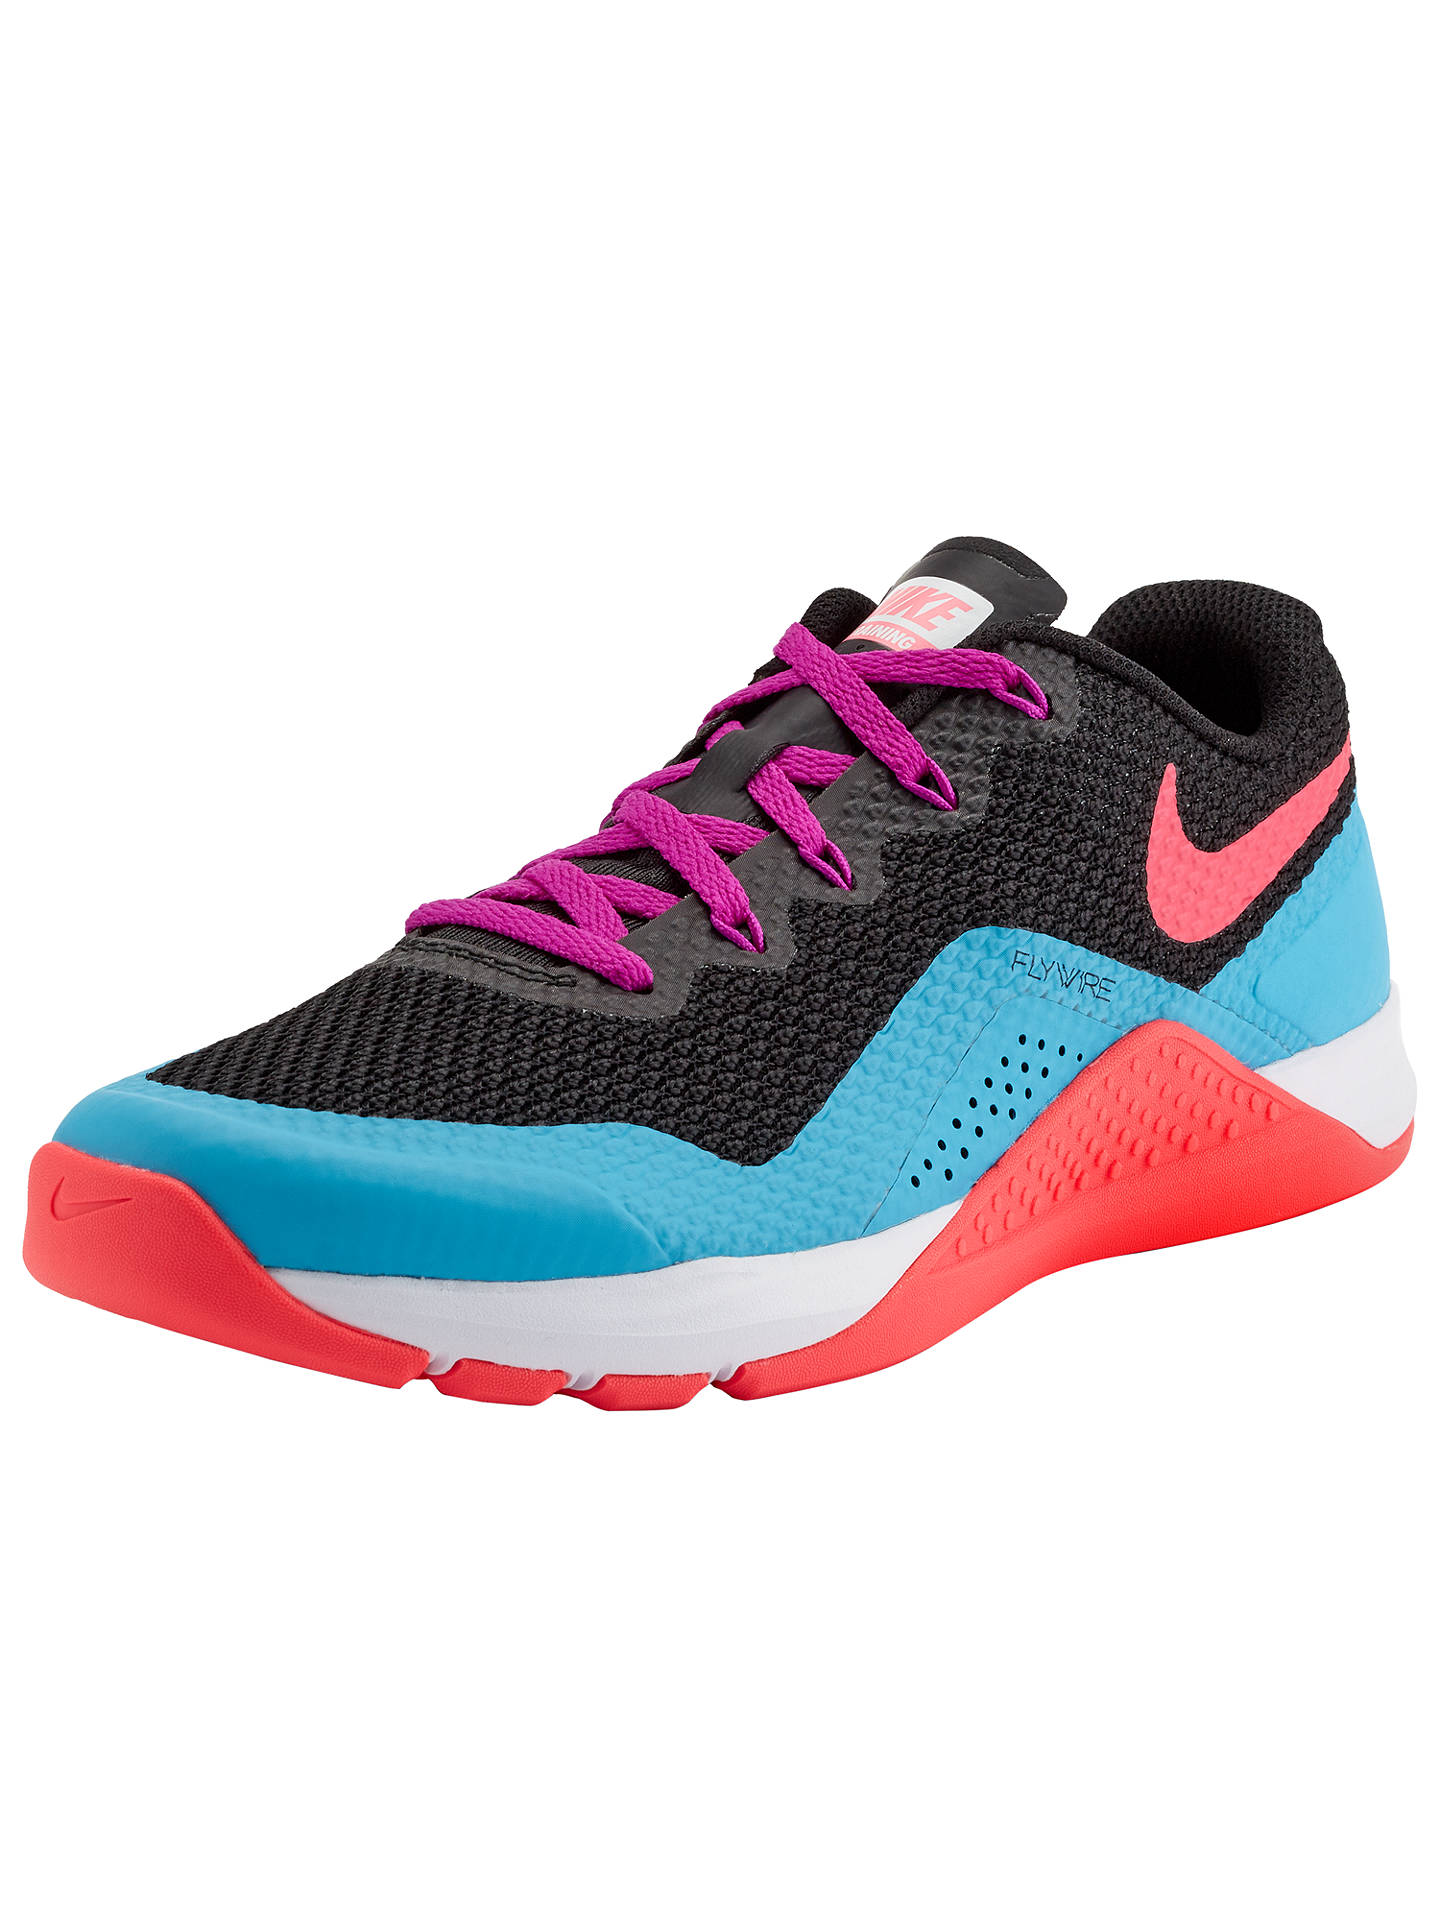 7d626e1820eed9 Buy Nike Metcon Repper DSX Women's Cross Trainers, Black/Pink, 4 Online at  ...